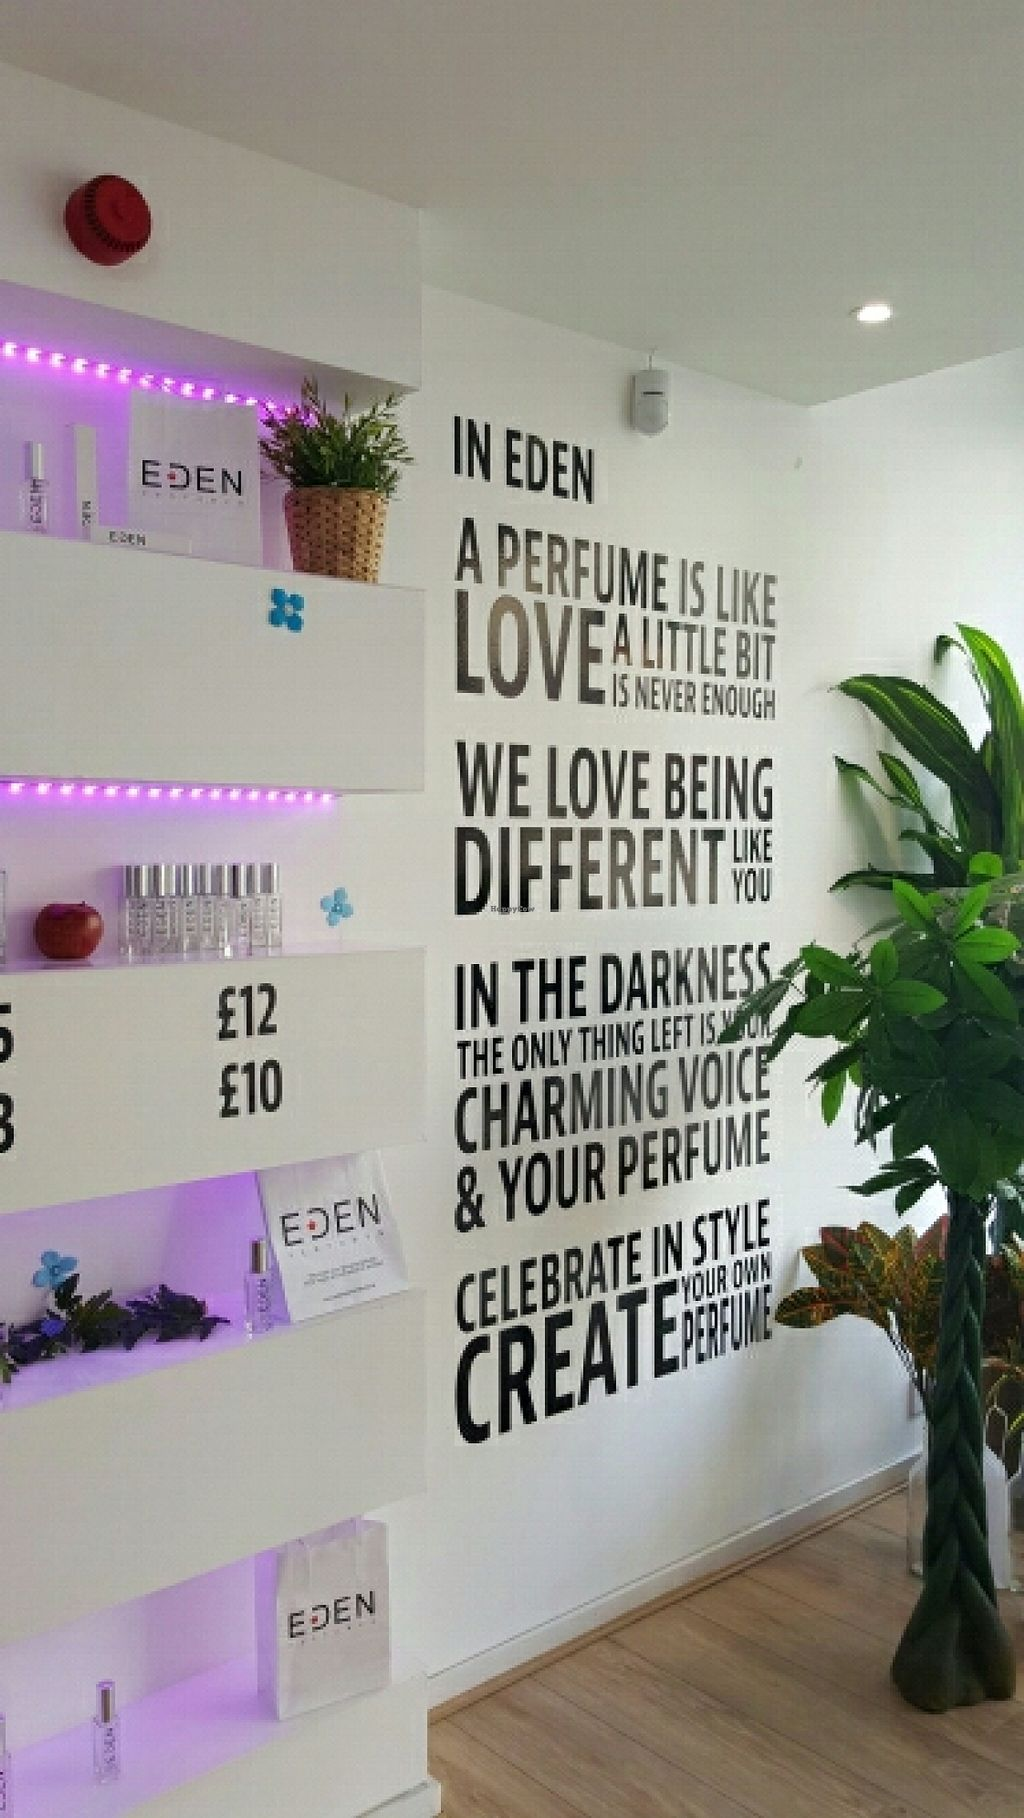 """Photo of Eden Perfumes - Western Rd  by <a href=""""/members/profile/Clare"""">Clare</a> <br/>Thoughtful  <br/> March 12, 2016  - <a href='/contact/abuse/image/70807/139740'>Report</a>"""